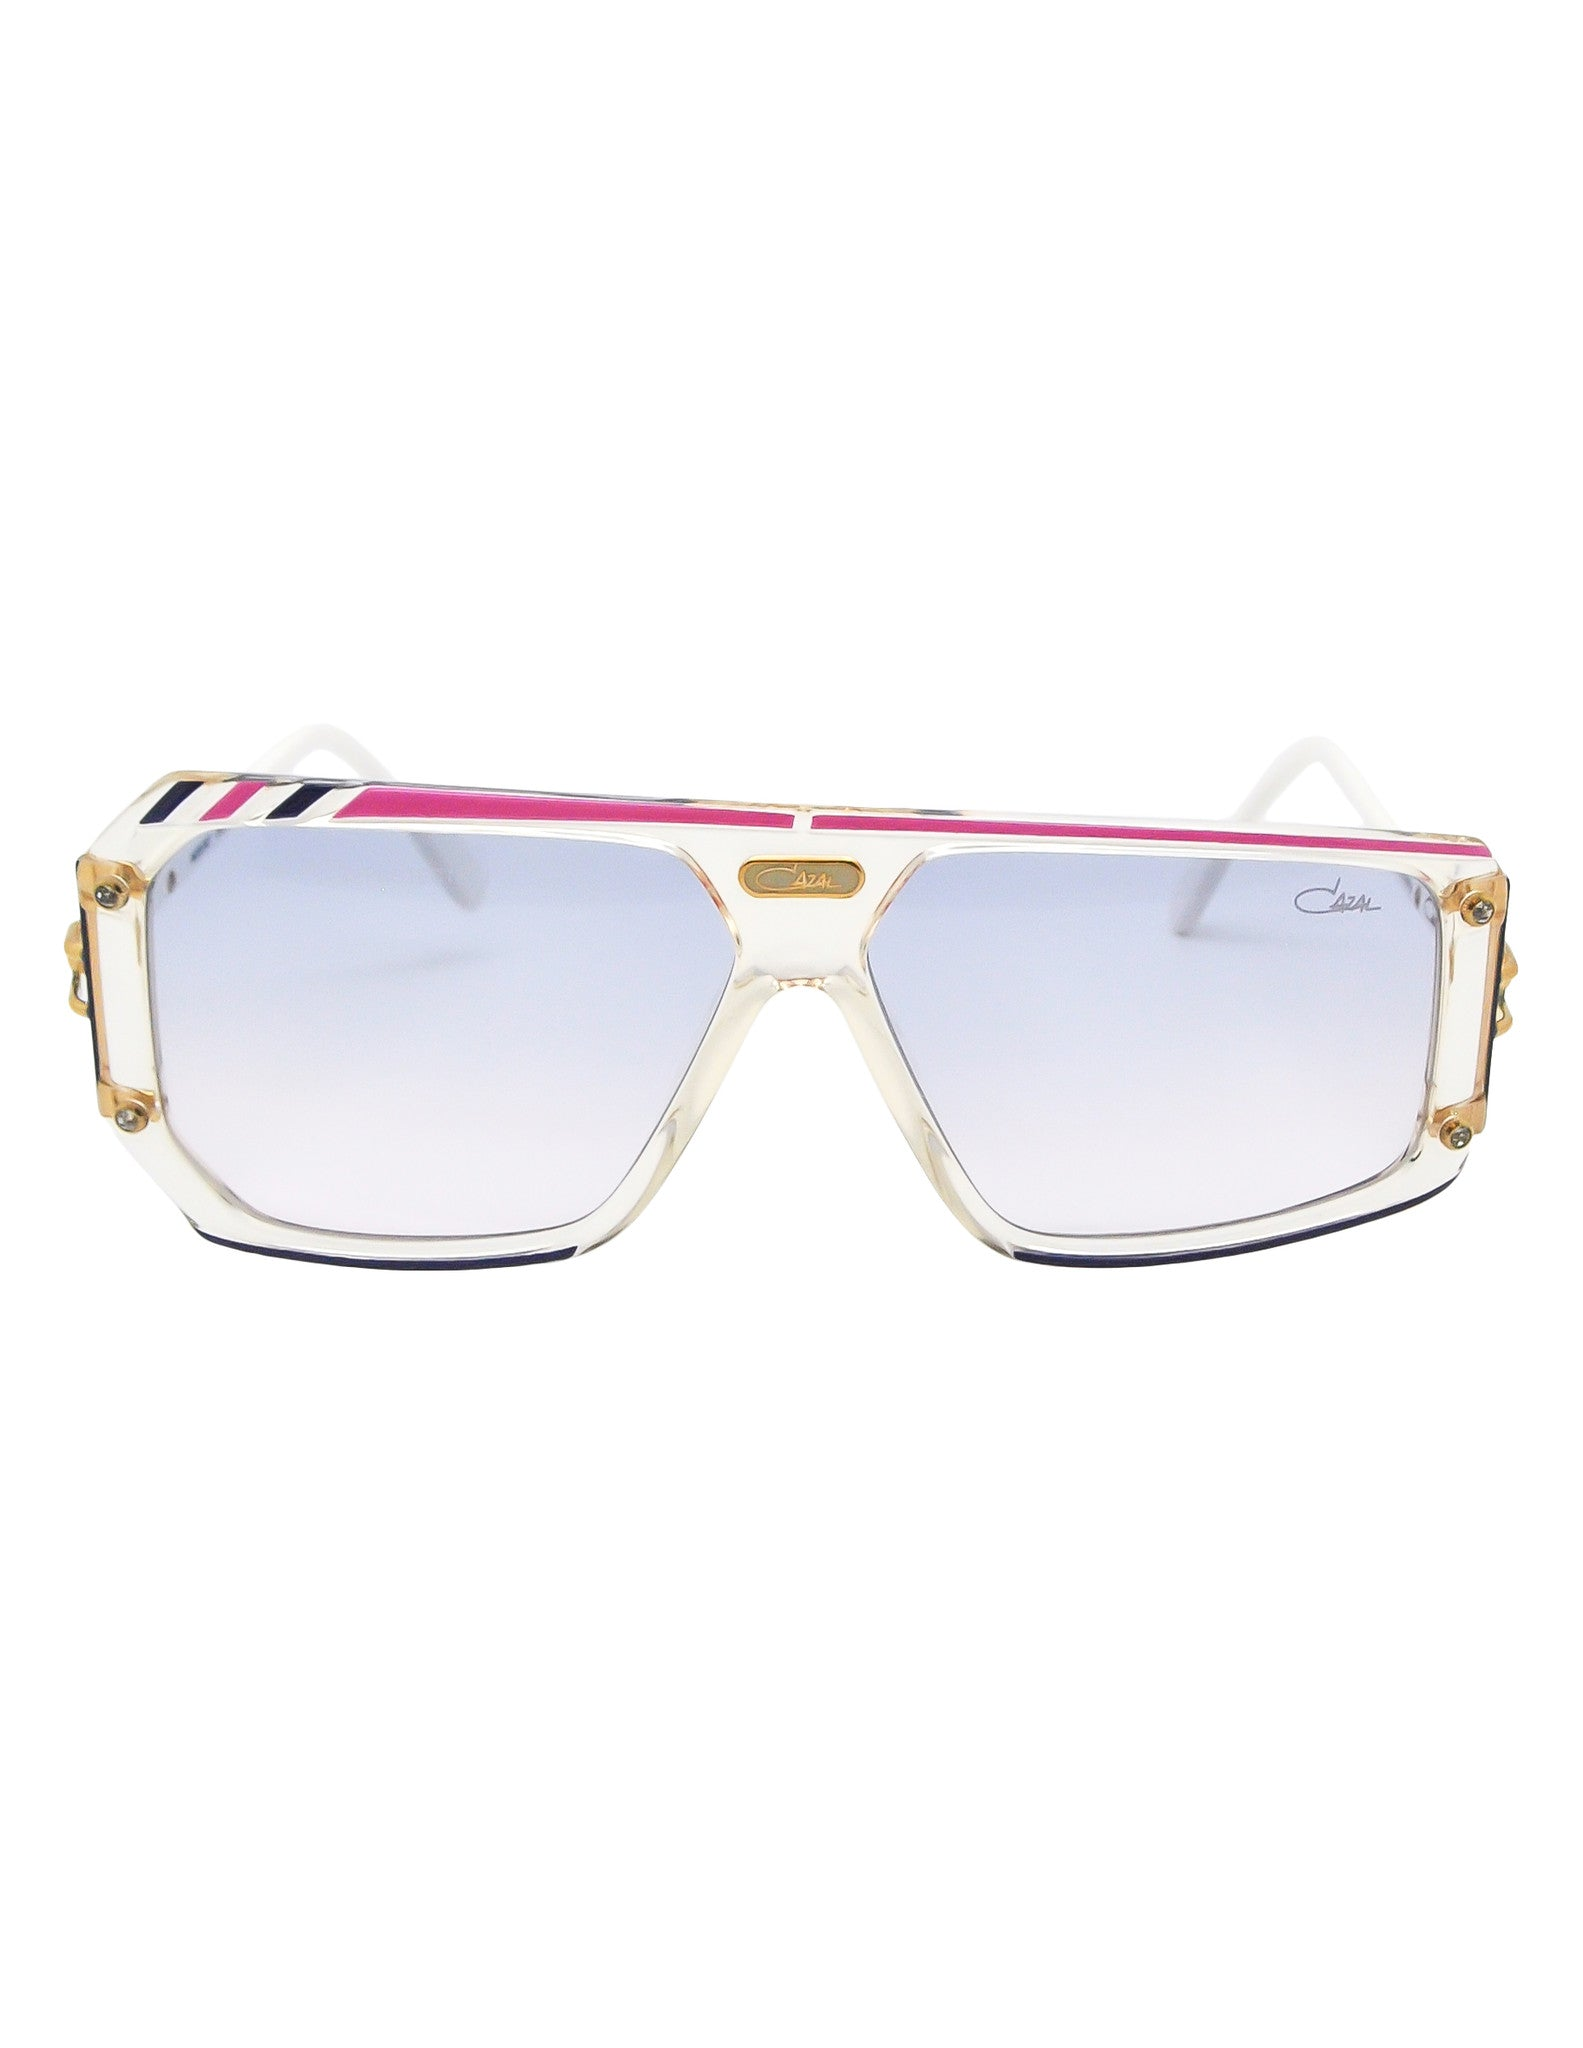 9d33b47e827 Cazal Vintage Asymmetrical Purple and Pink Sunglasses 867 125 - Amarcord  Vintage Fashion - 1